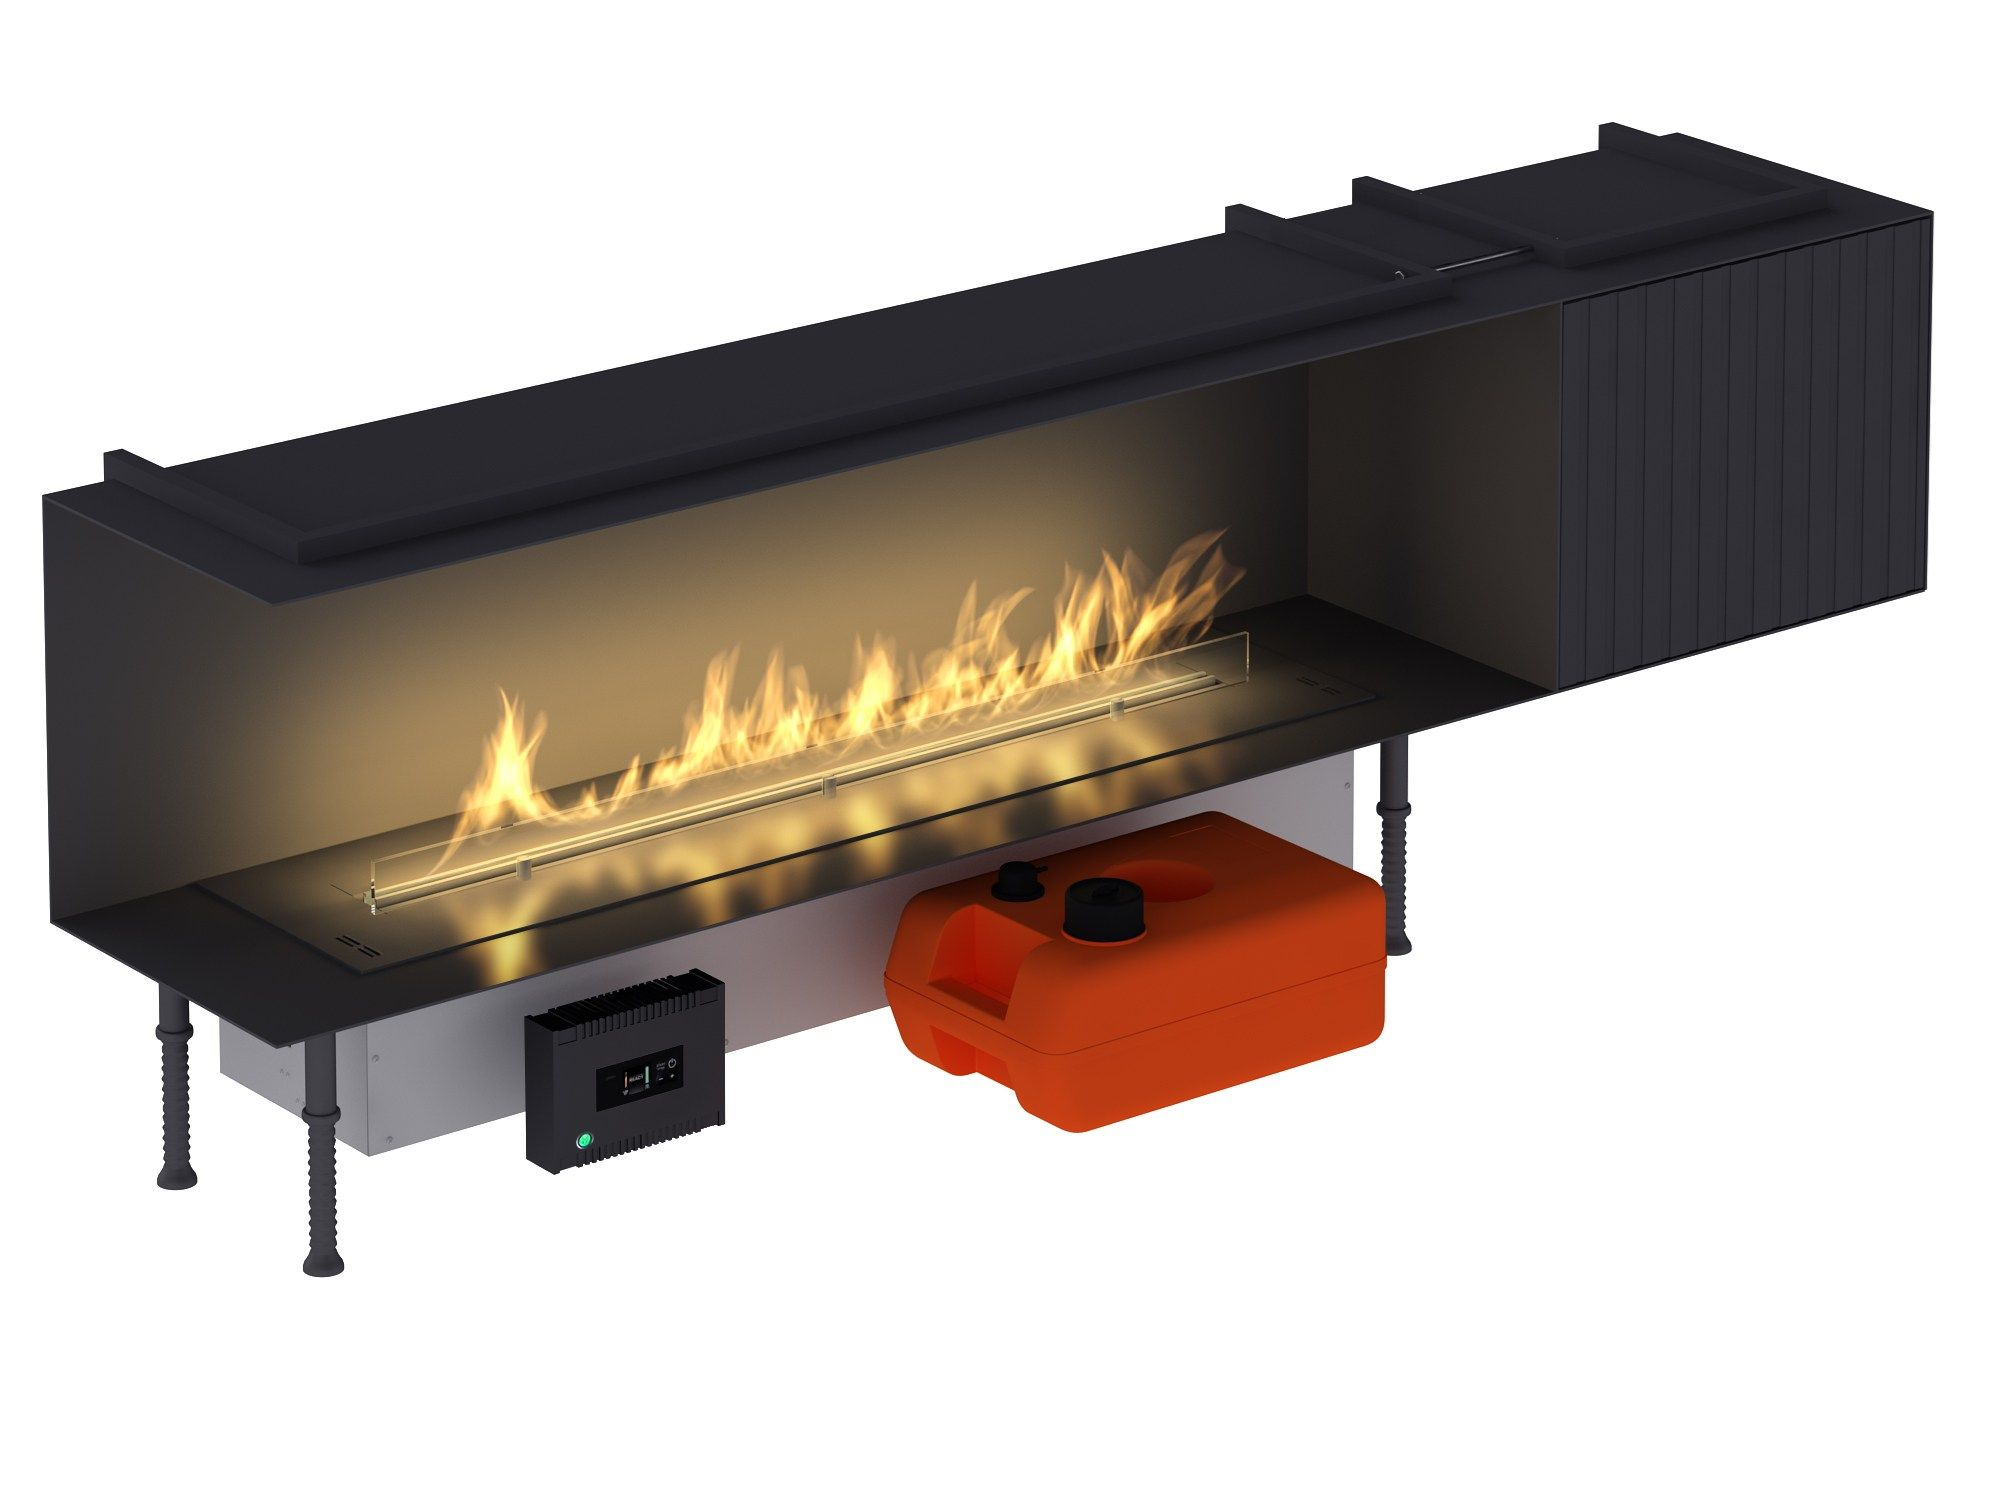 Smart Fireplace Insert With External Fuel Tank Fire Line Automatic